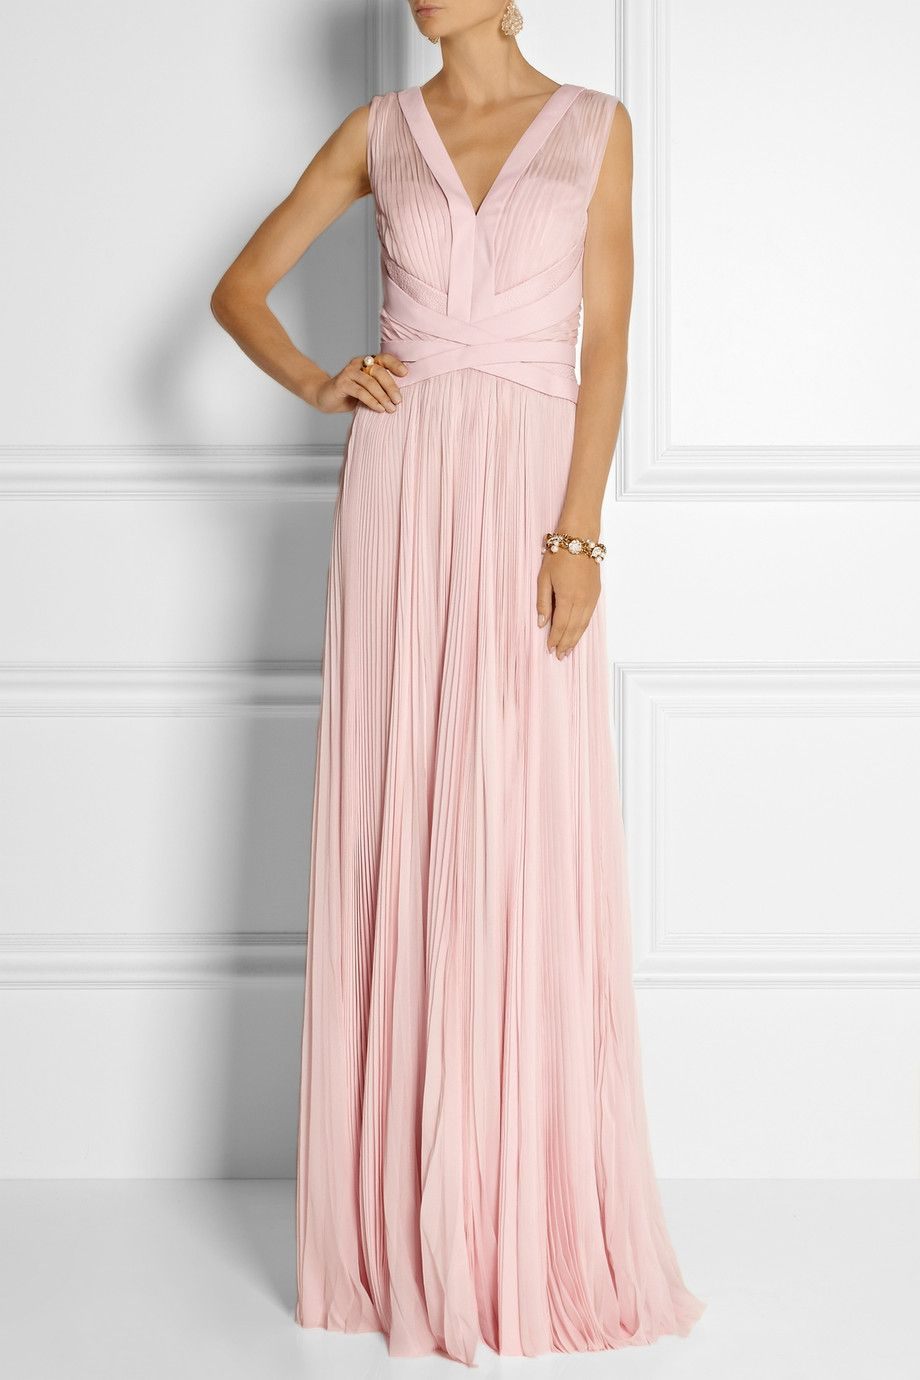 J Mendel Pleated chiffon gown | Me gusta | Pinterest | Vestiditos ...